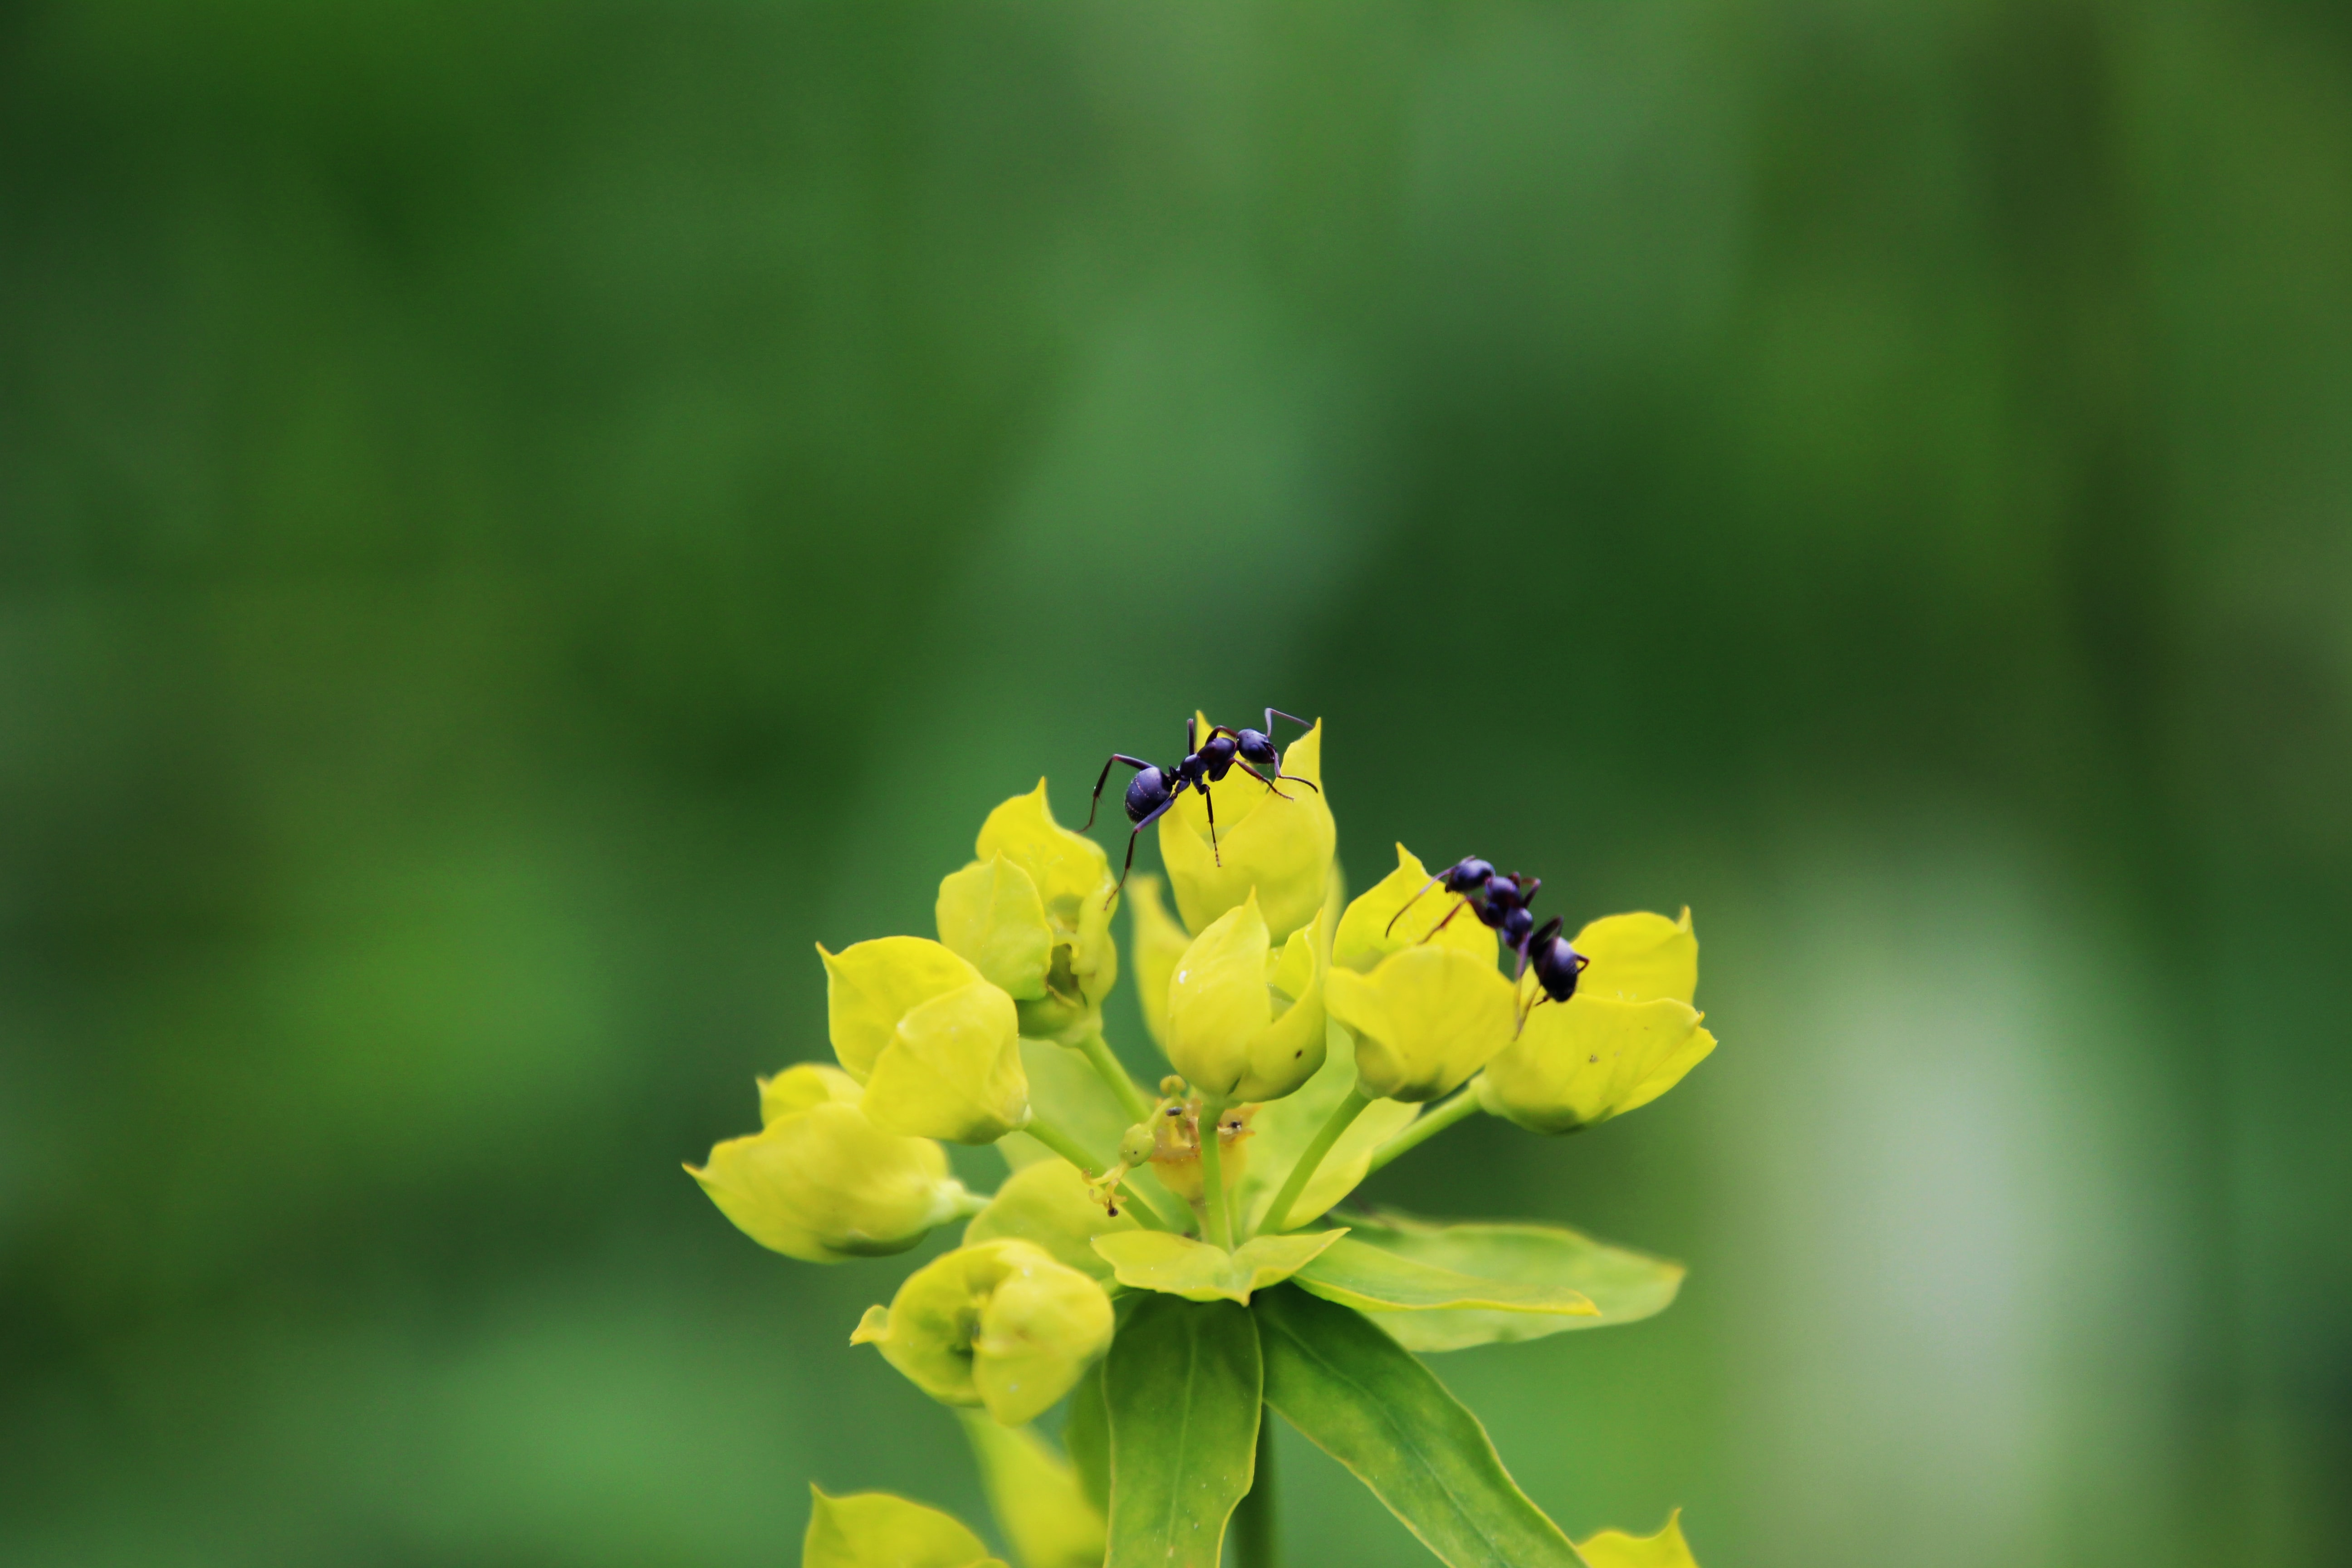 shallow focus of ants on yellow flower